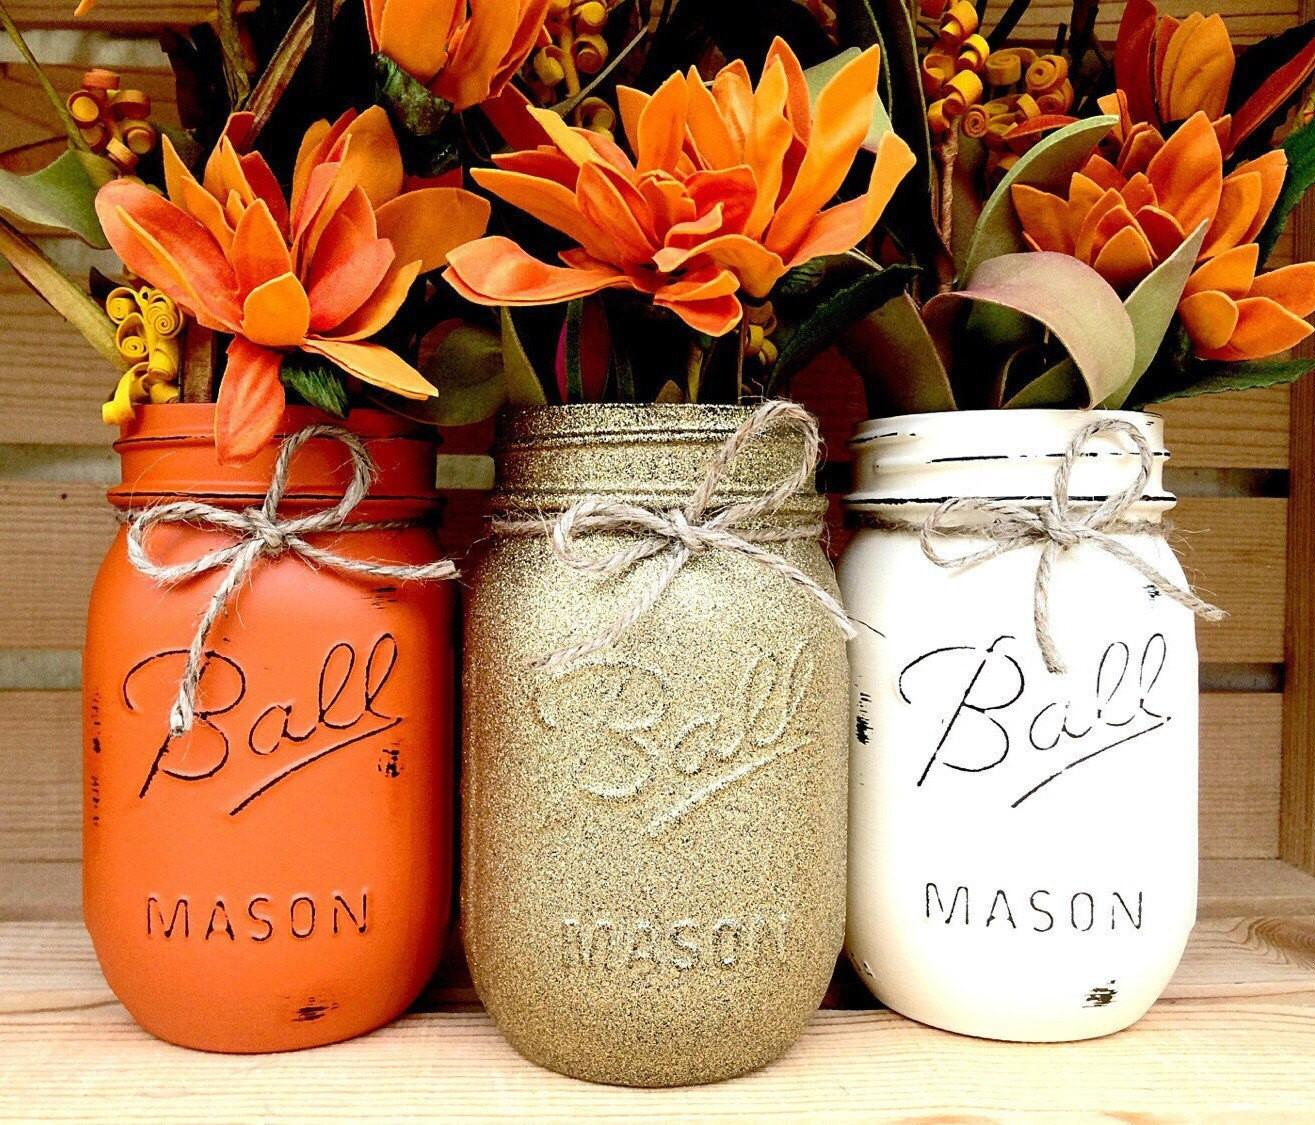 Pick Mason Jar Trio Autumn Home Decor Fall